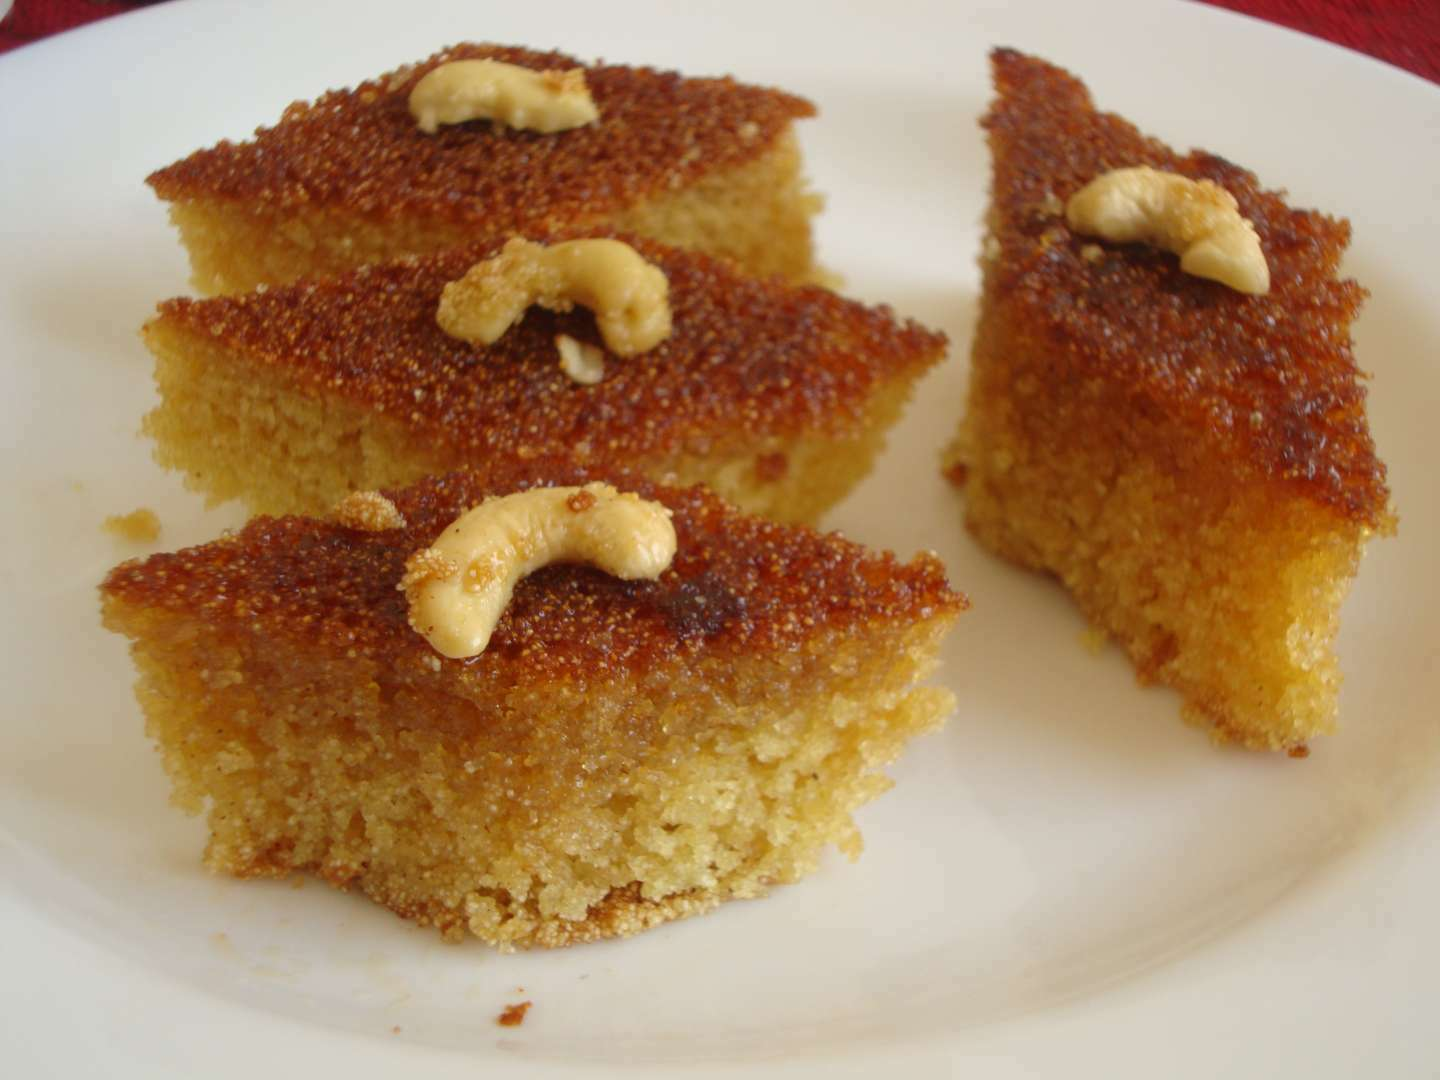 Honey drizzled semolina cake, Recipe Petitchef